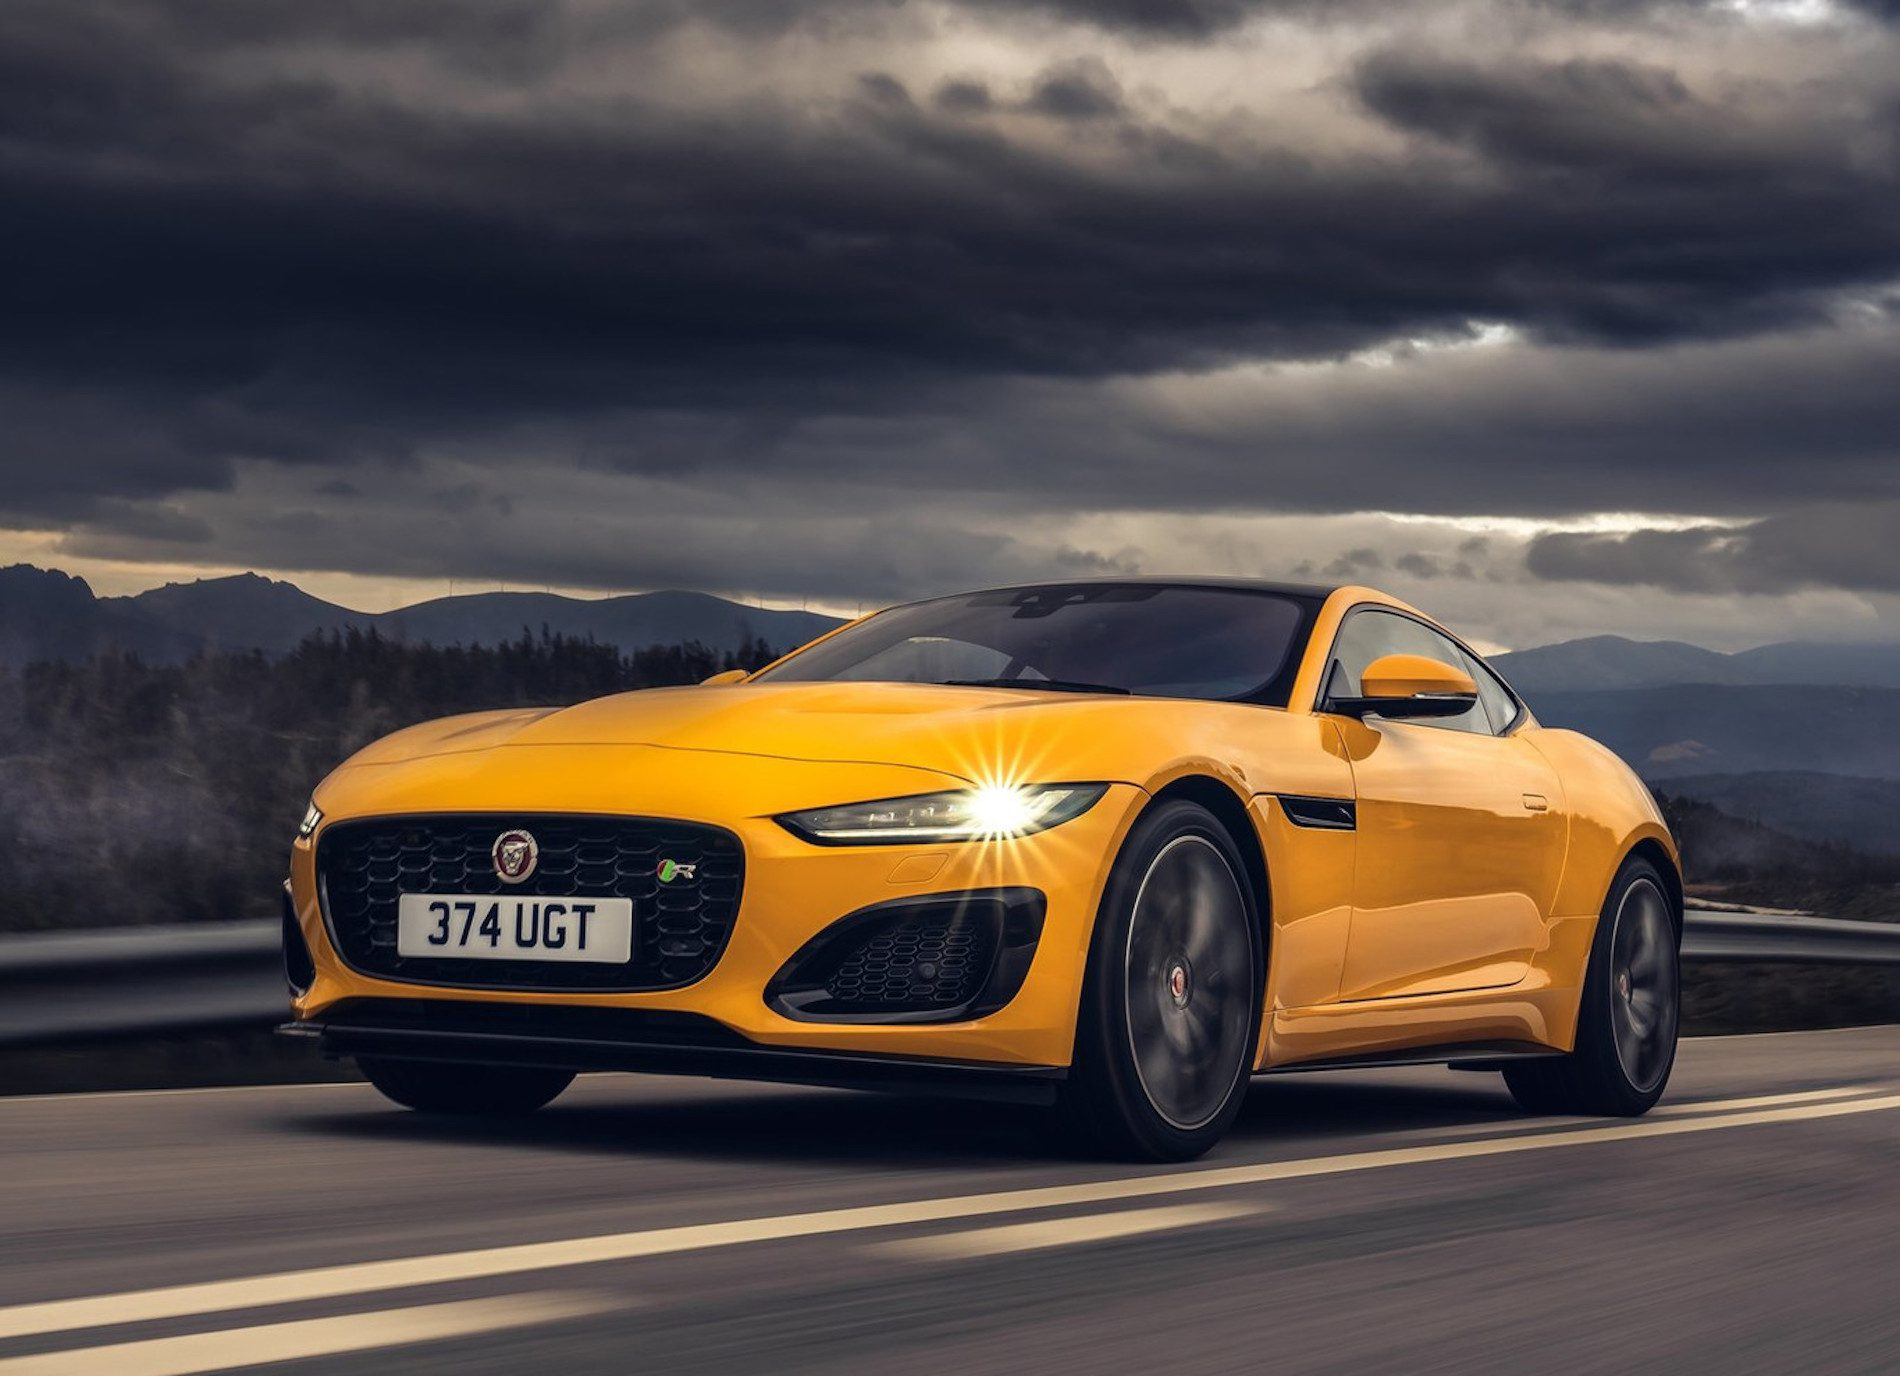 A view of a Yellow 2021 Jaguar F-Type R Convertible